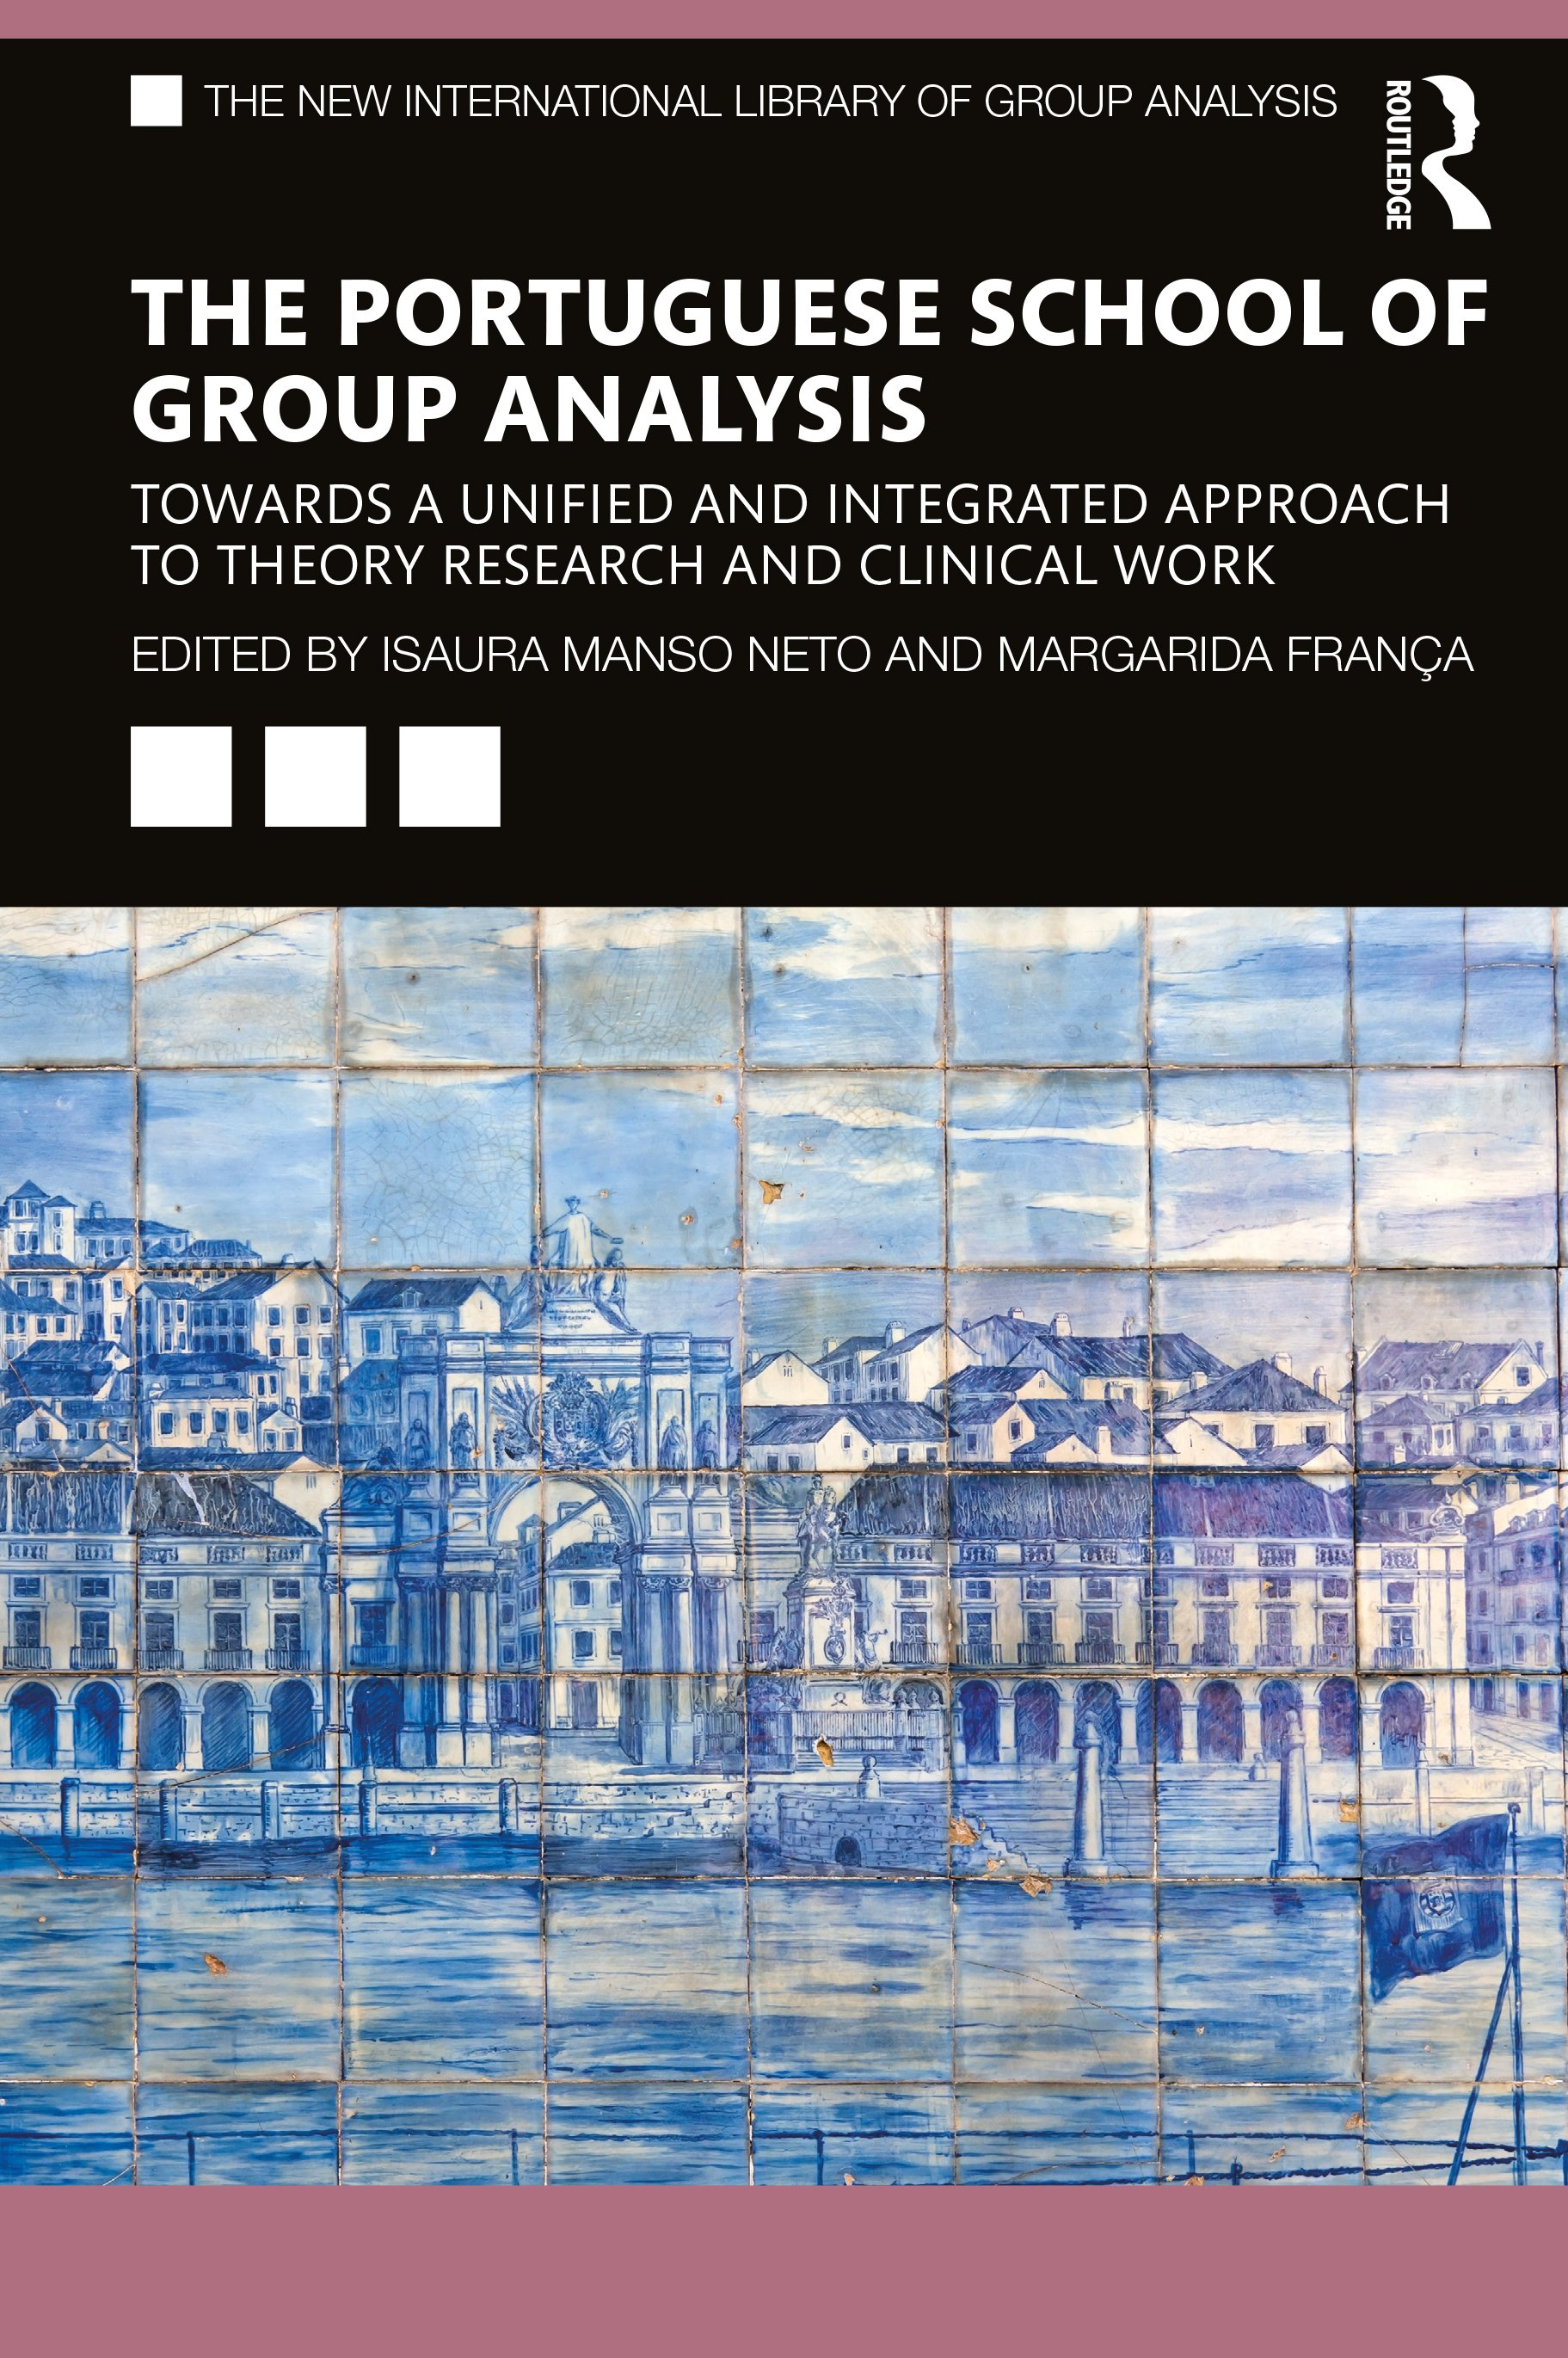 The Portuguese School of Group Analysis